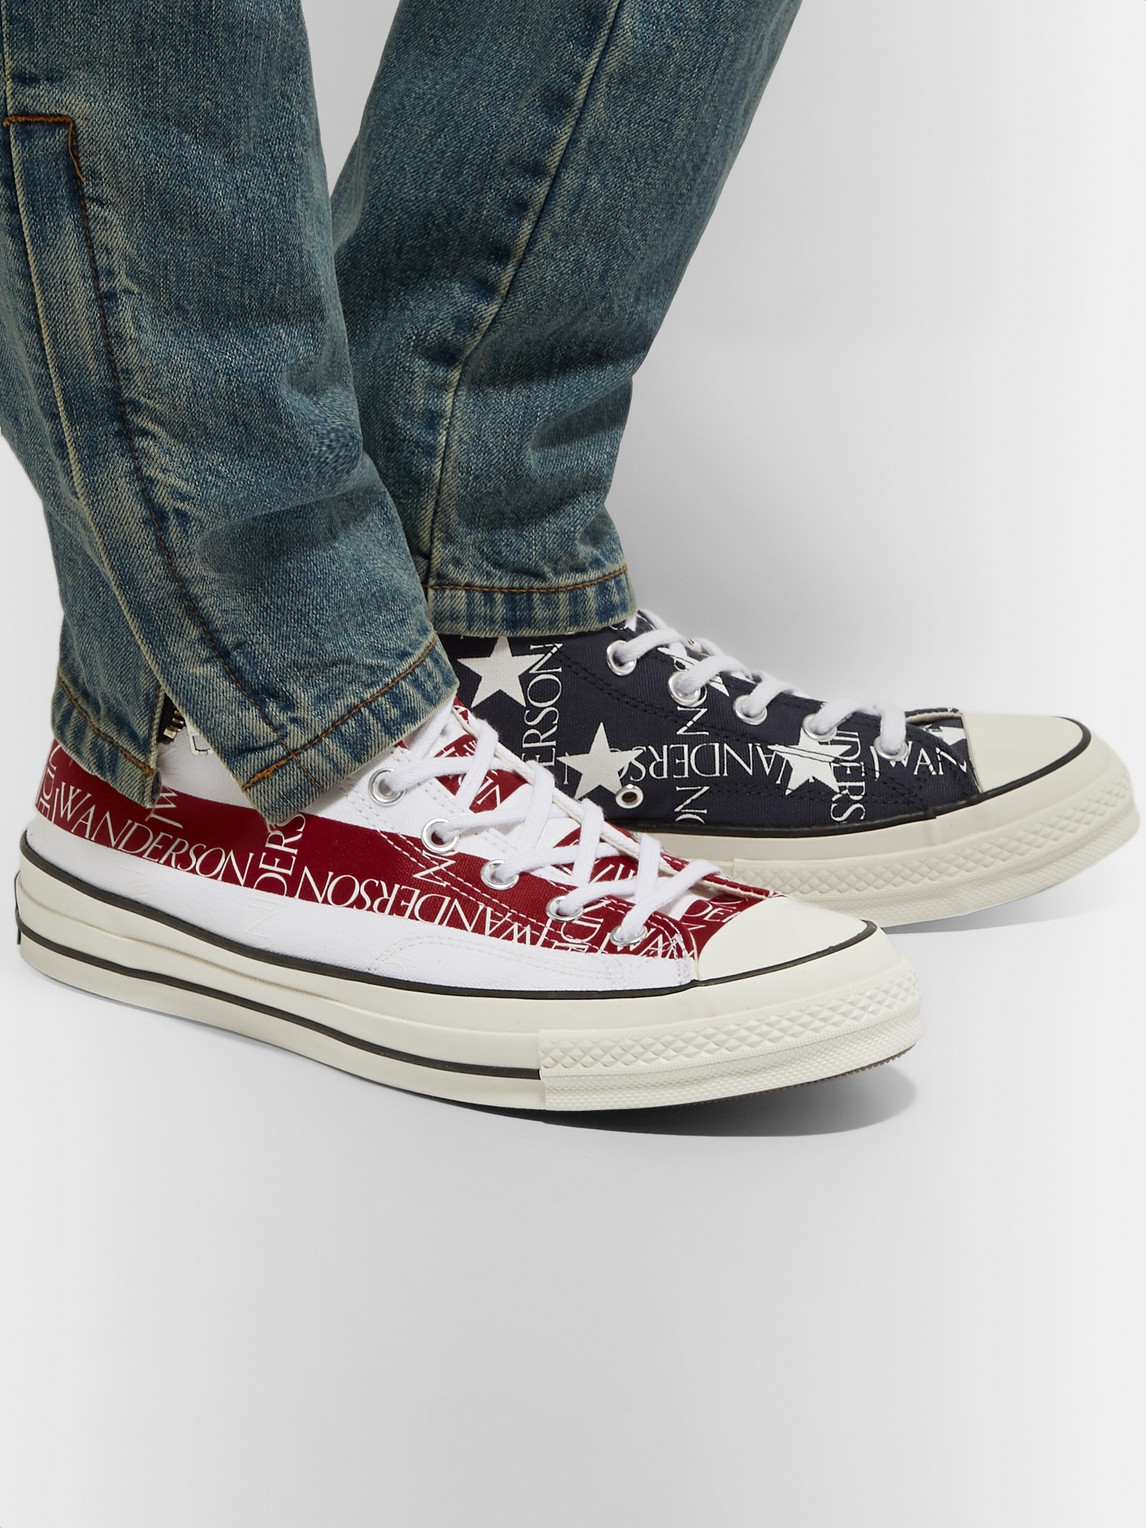 Converse Sneakers JW ANDERSON 1970S CHUCK TAYLOR ALL STAR LOGO-PRINT CANVAS HIGH-TOP SNEAKERS